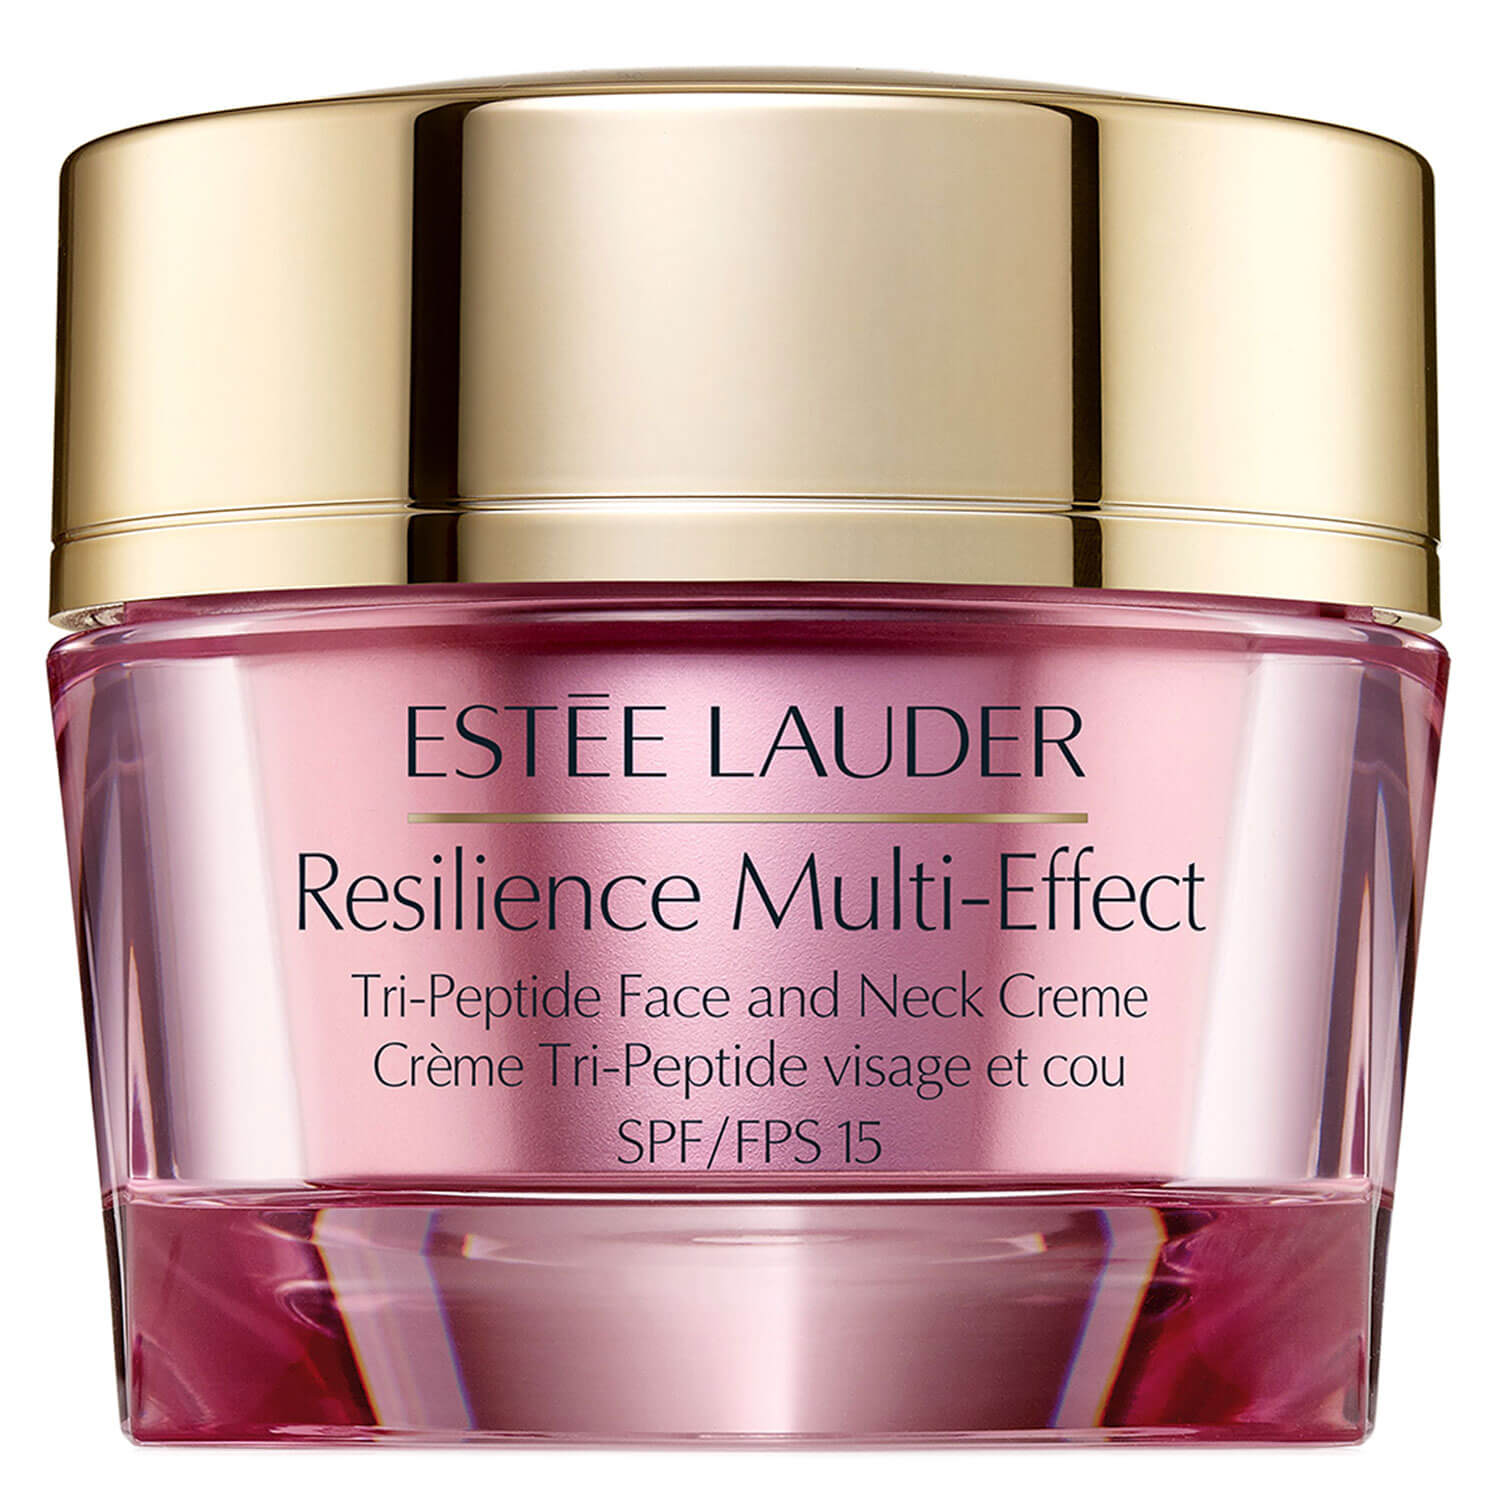 Resilience Multi-Effect - Tri-Peptide Face and Neck Creme Dry SPF15